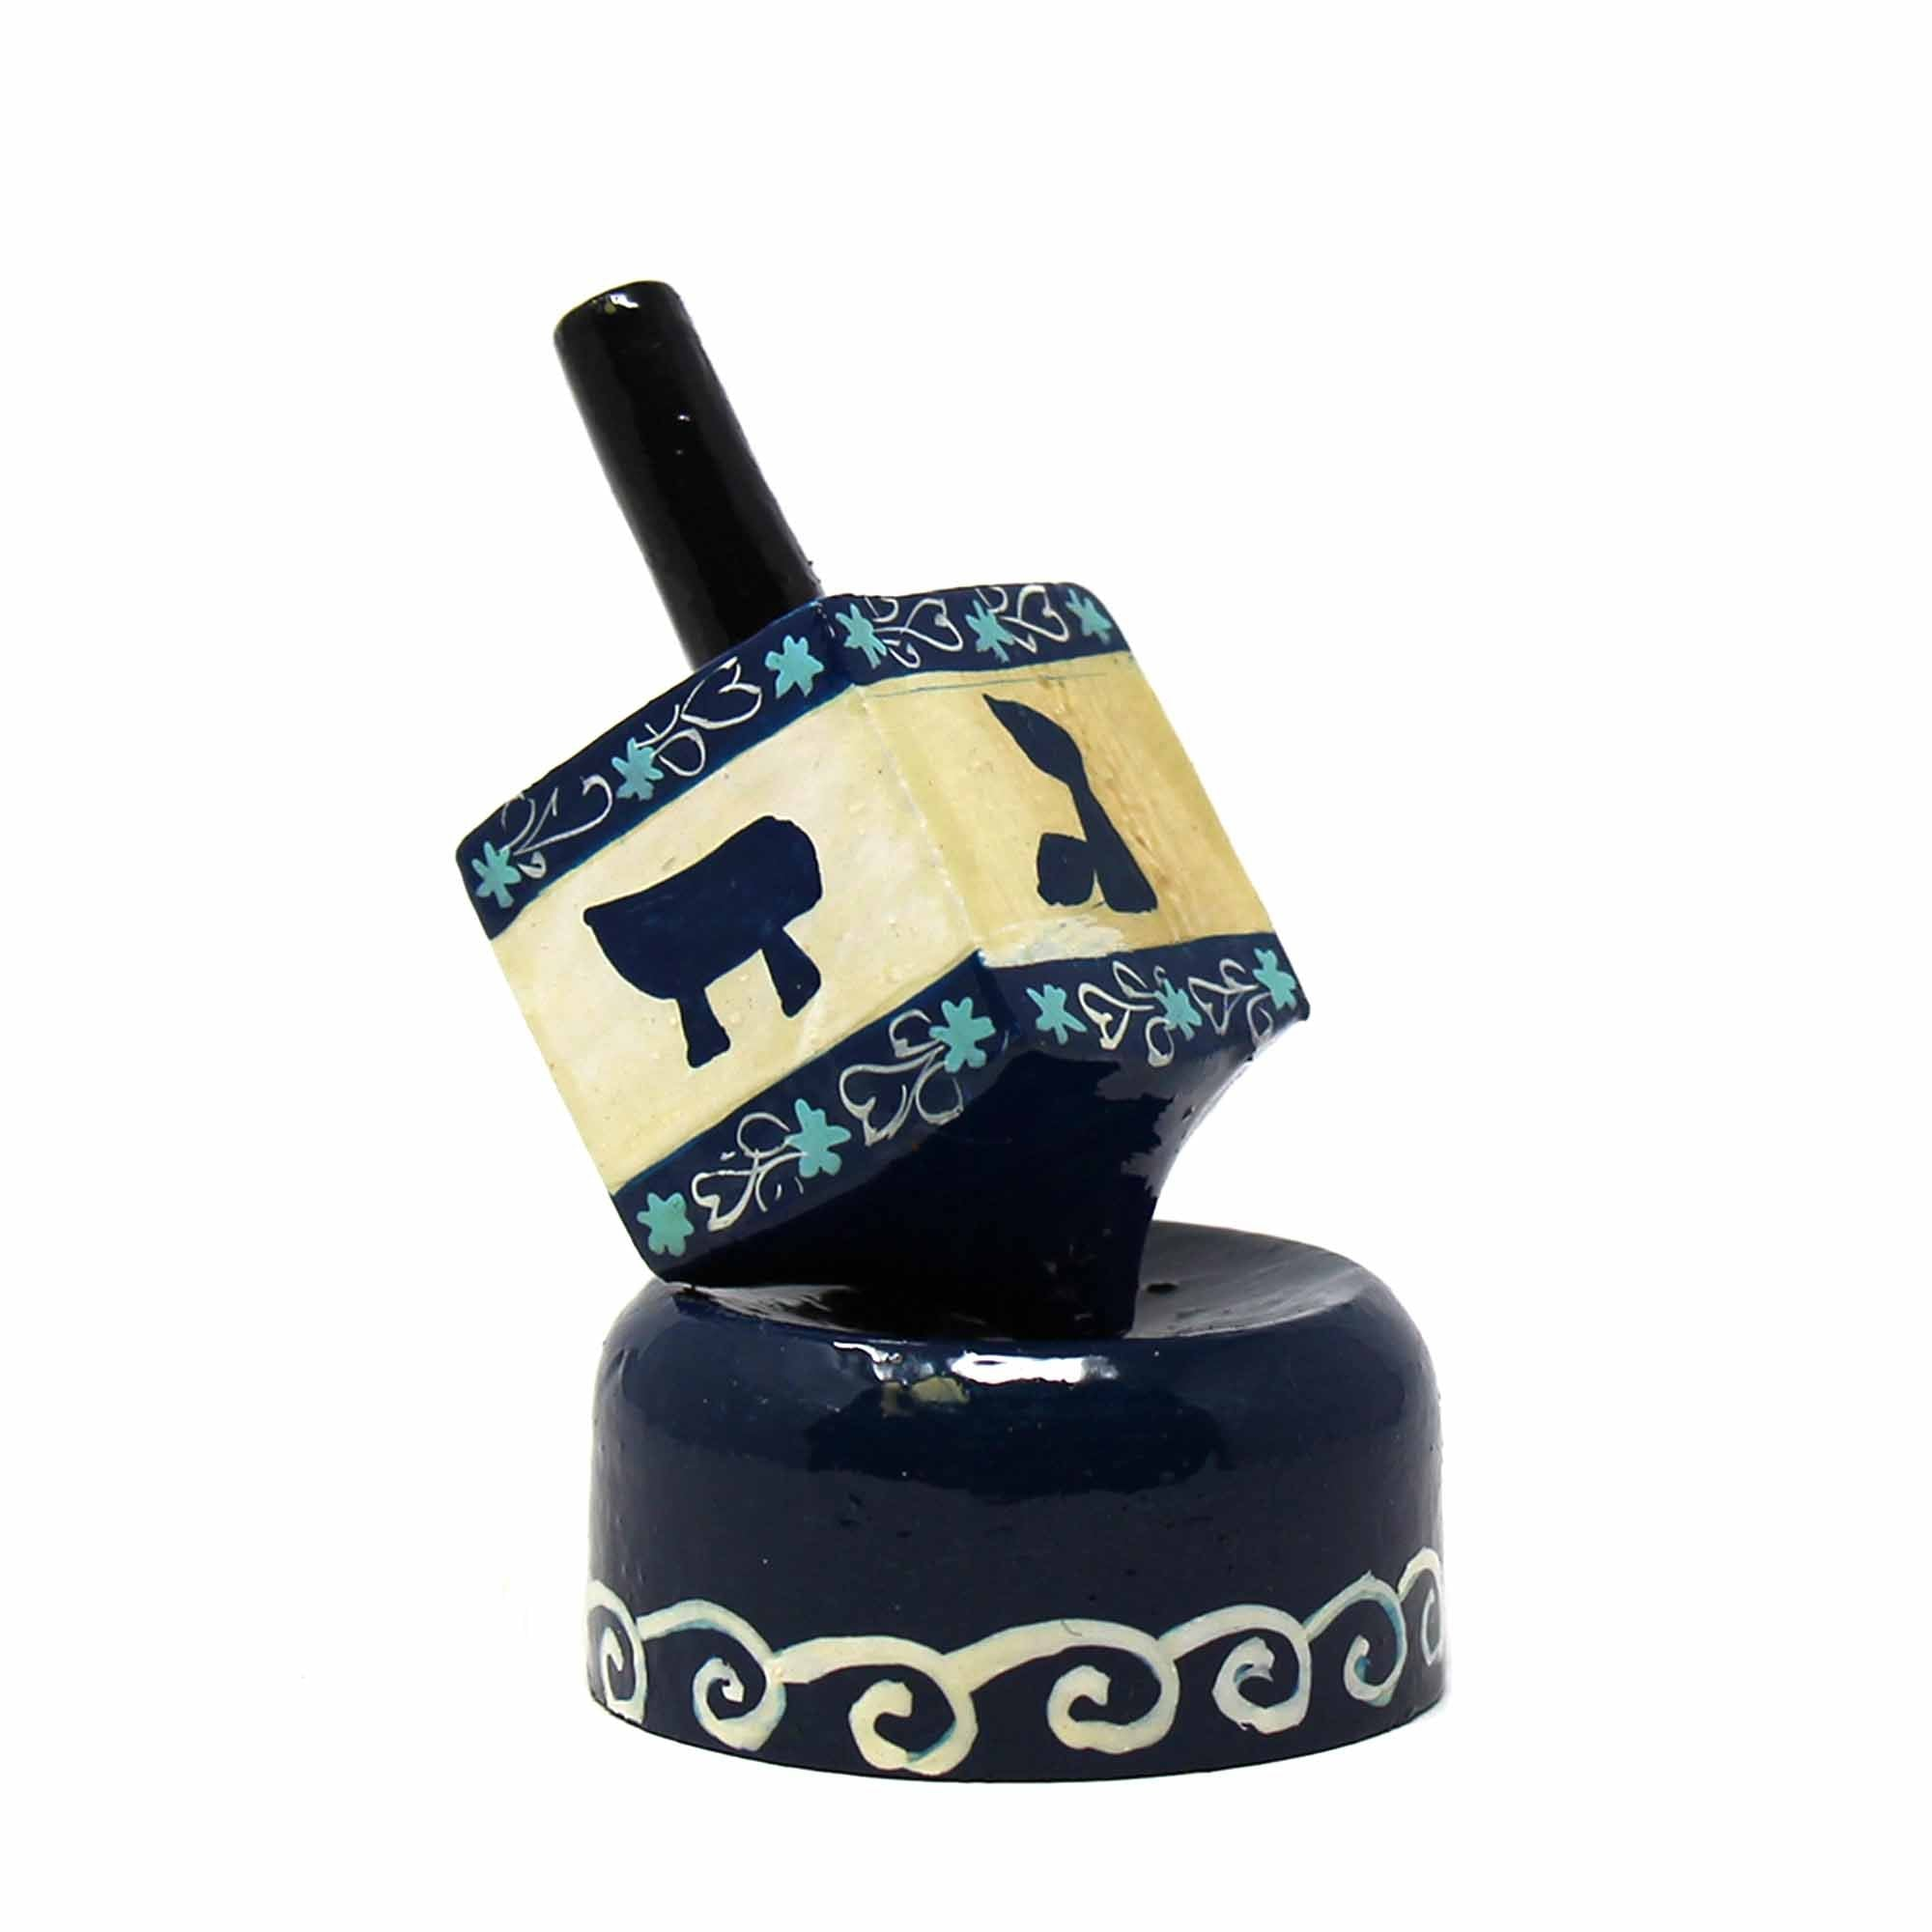 Handpainted Paper Mache Dreidel with Blue Wood Base